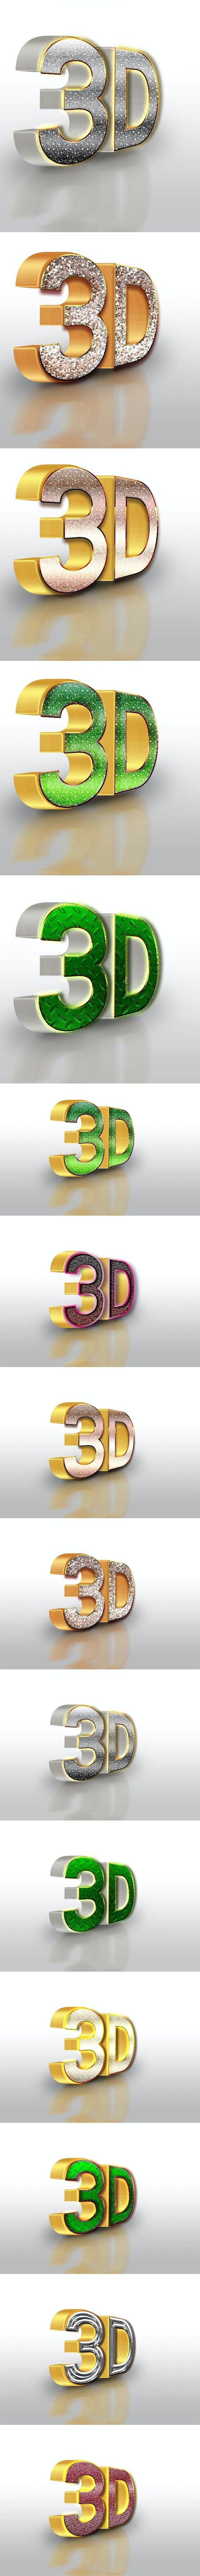 10 3D Text Style V.50ALM110216 - Styles Photoshop